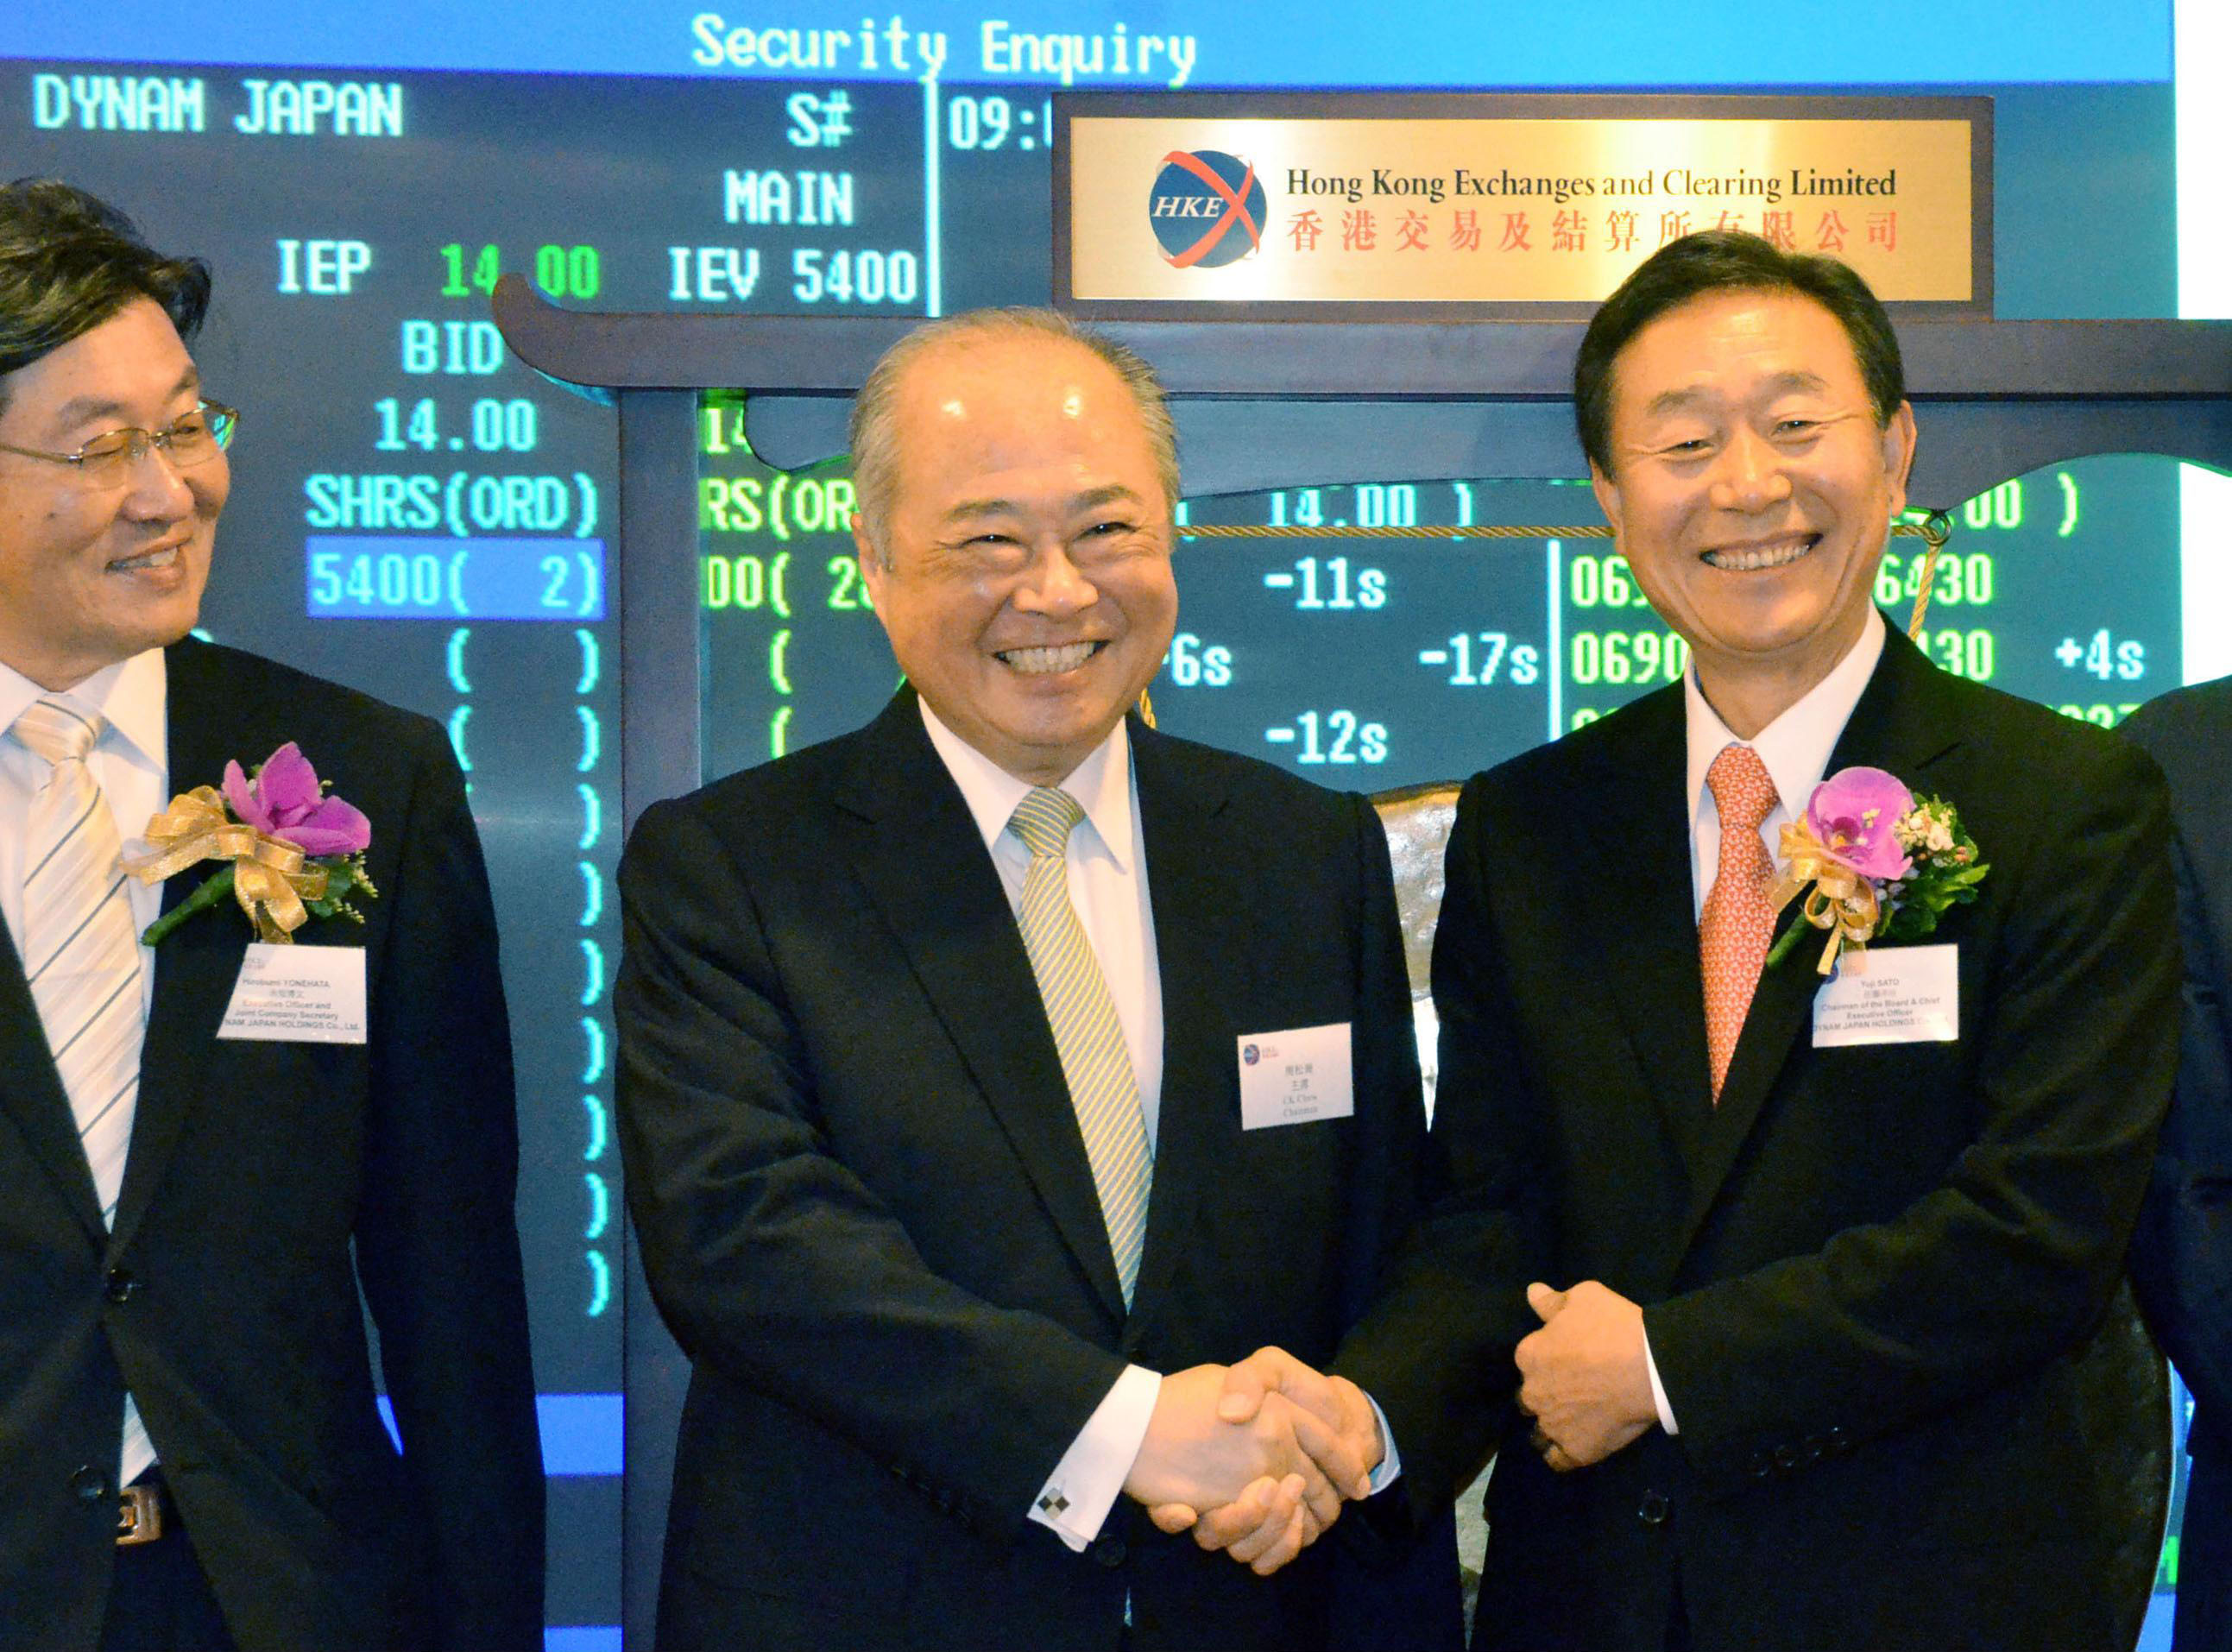 Game of chance: Dynam Japan Holdings Co. President Yoji Sato (right) shakes hands at the Hong Kong Stock Exchange with its chairman, Chow Chung-kong, on Monday. | KYODO